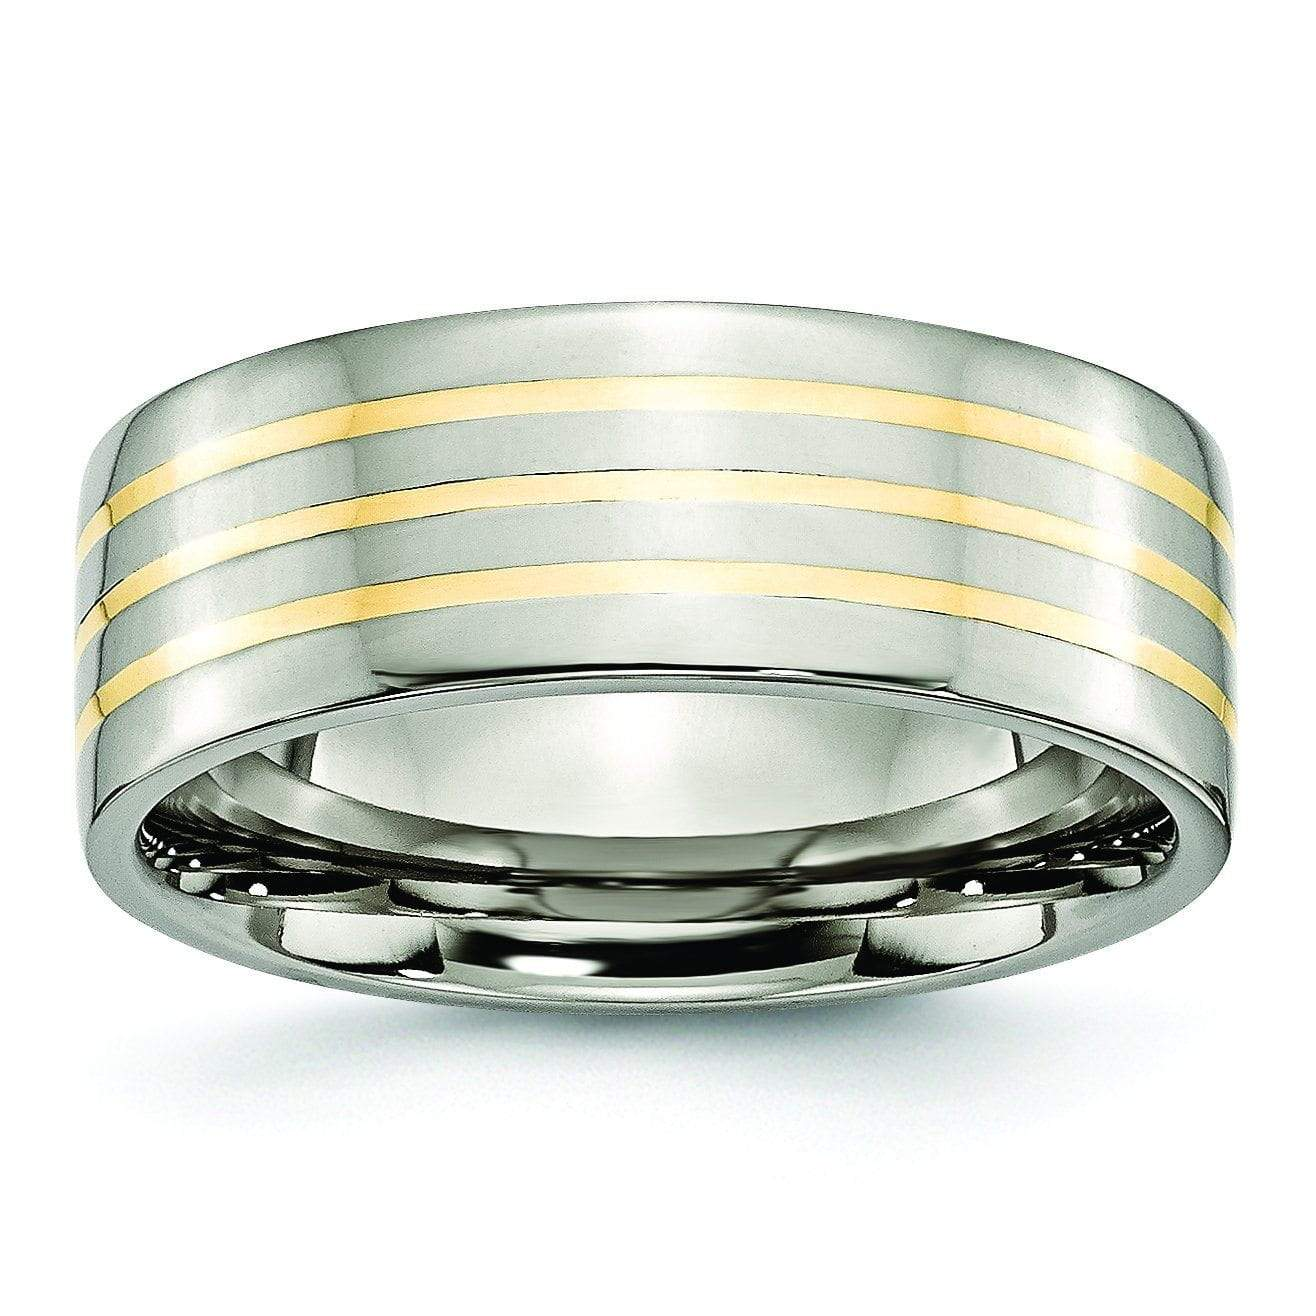 14k Yellow Gold Inlay Titanium Ring Flat Polished Finish 8mm Titanium Wedding Rings deBebians